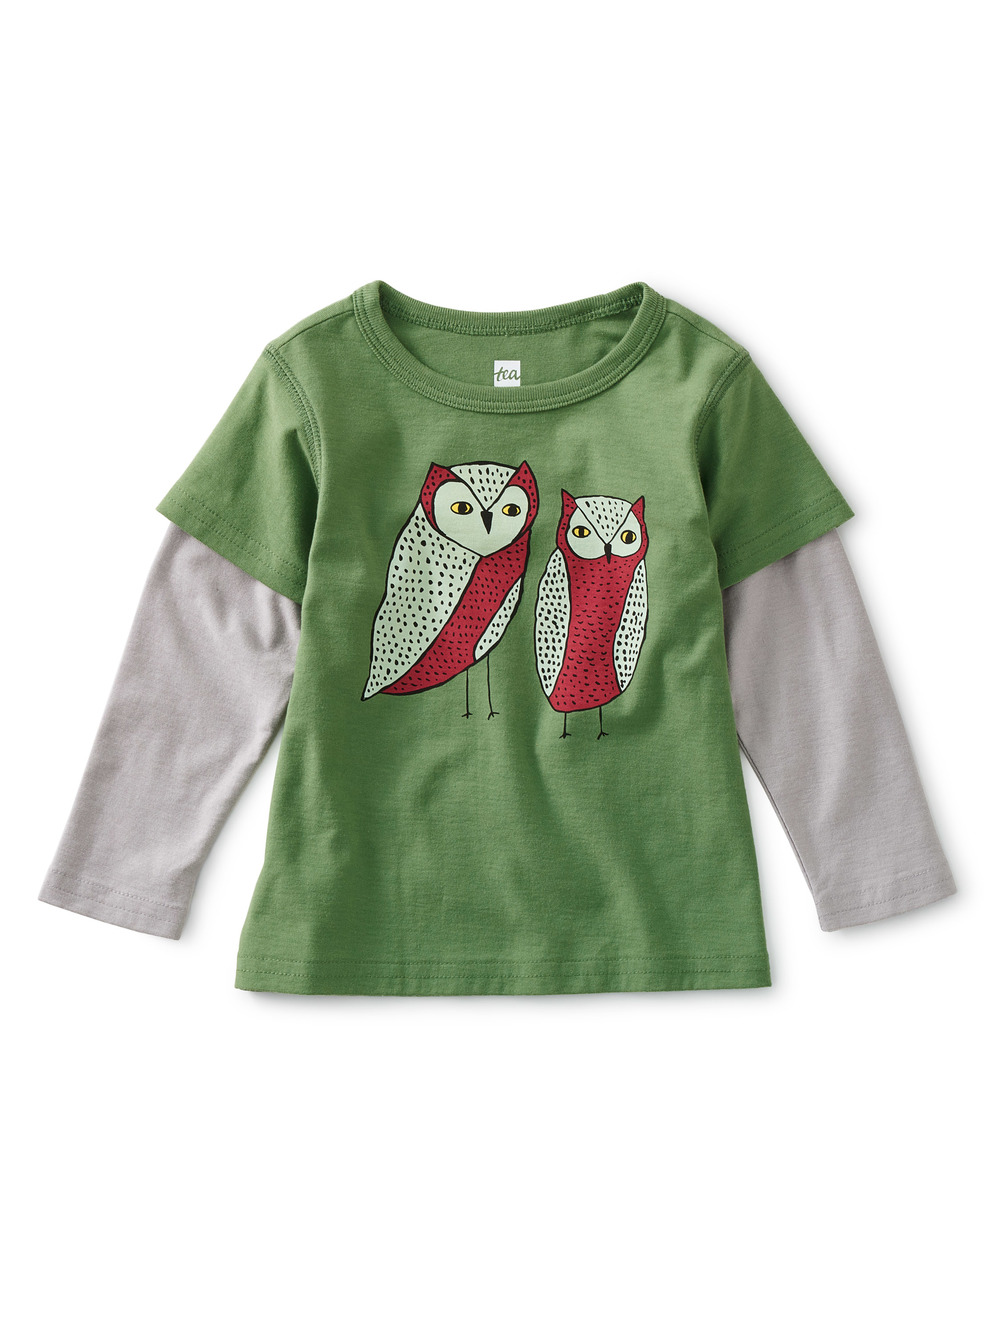 Owl Friends Baby Graphic Tee